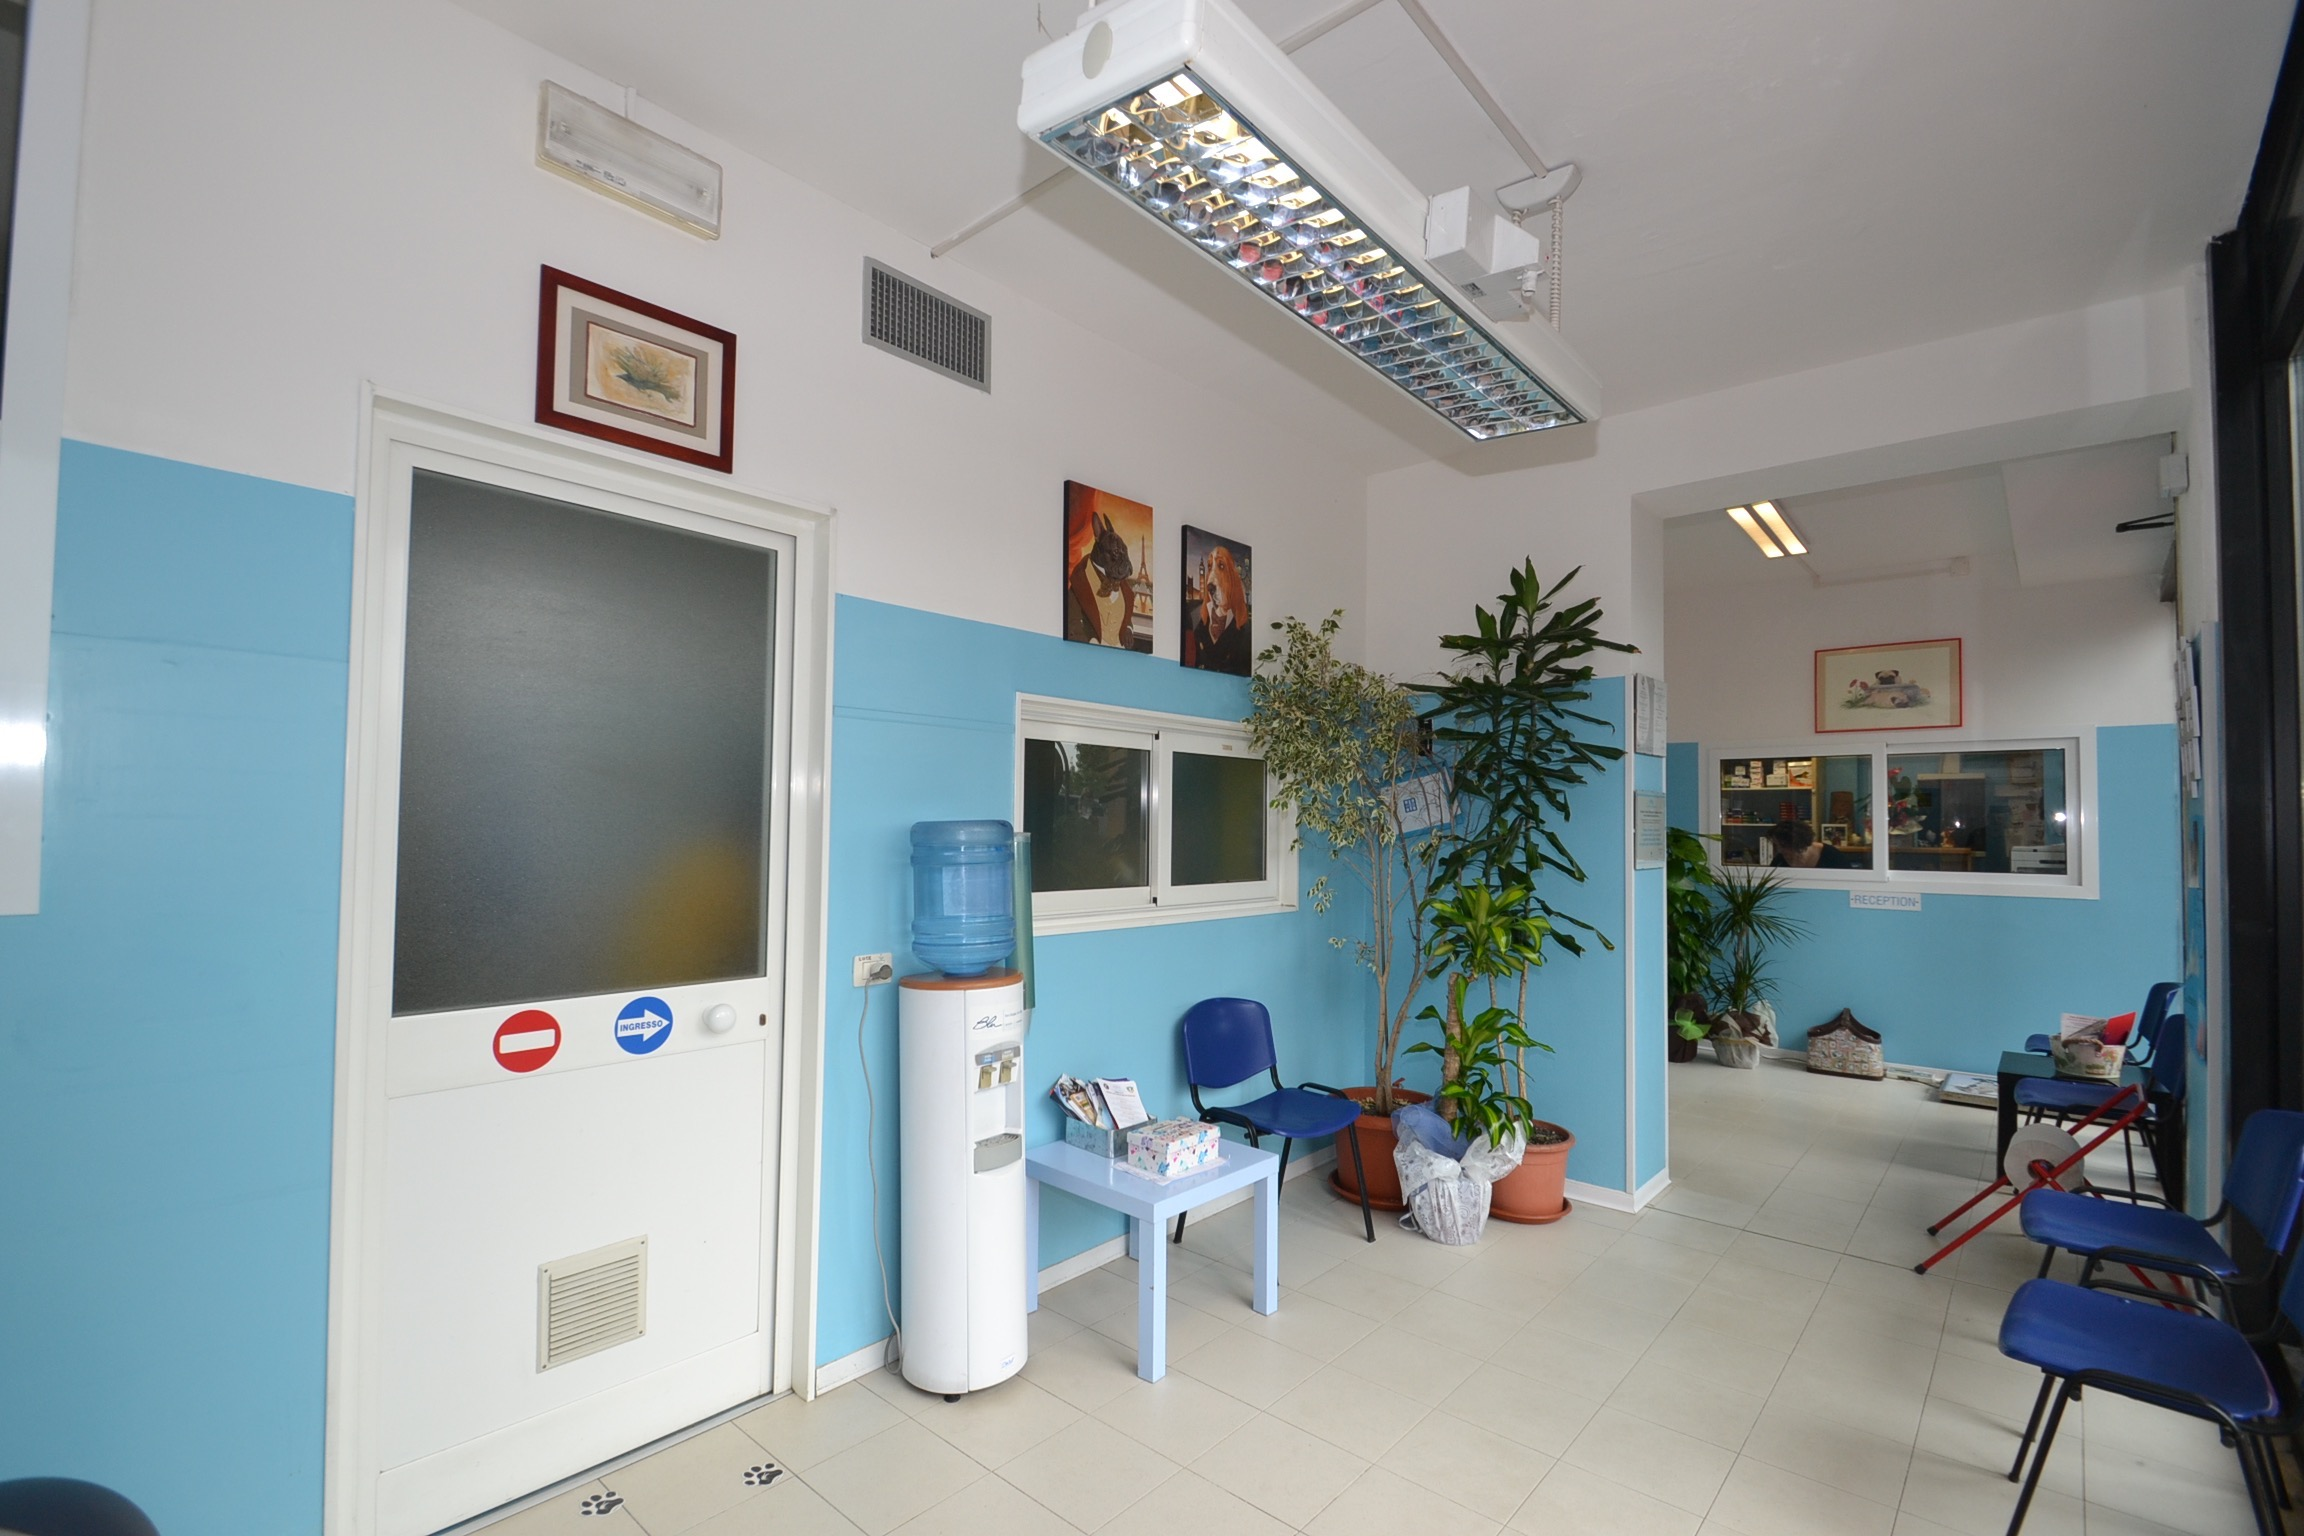 Sala d 39 aspetto clinica veterinaria melosi for Sala la sala